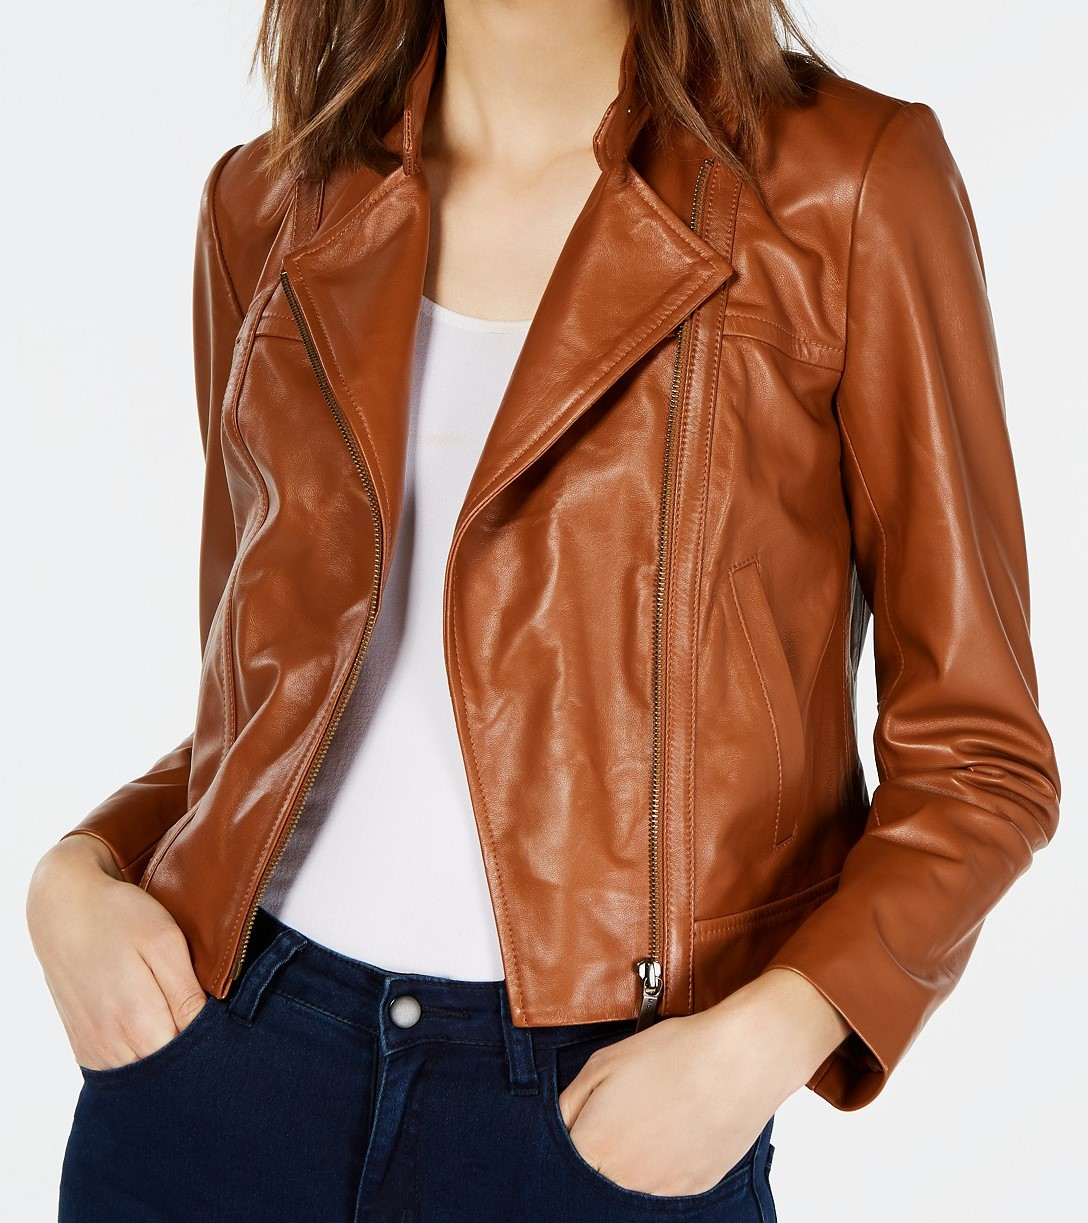 Petite Leather Moto Jacket - Macys